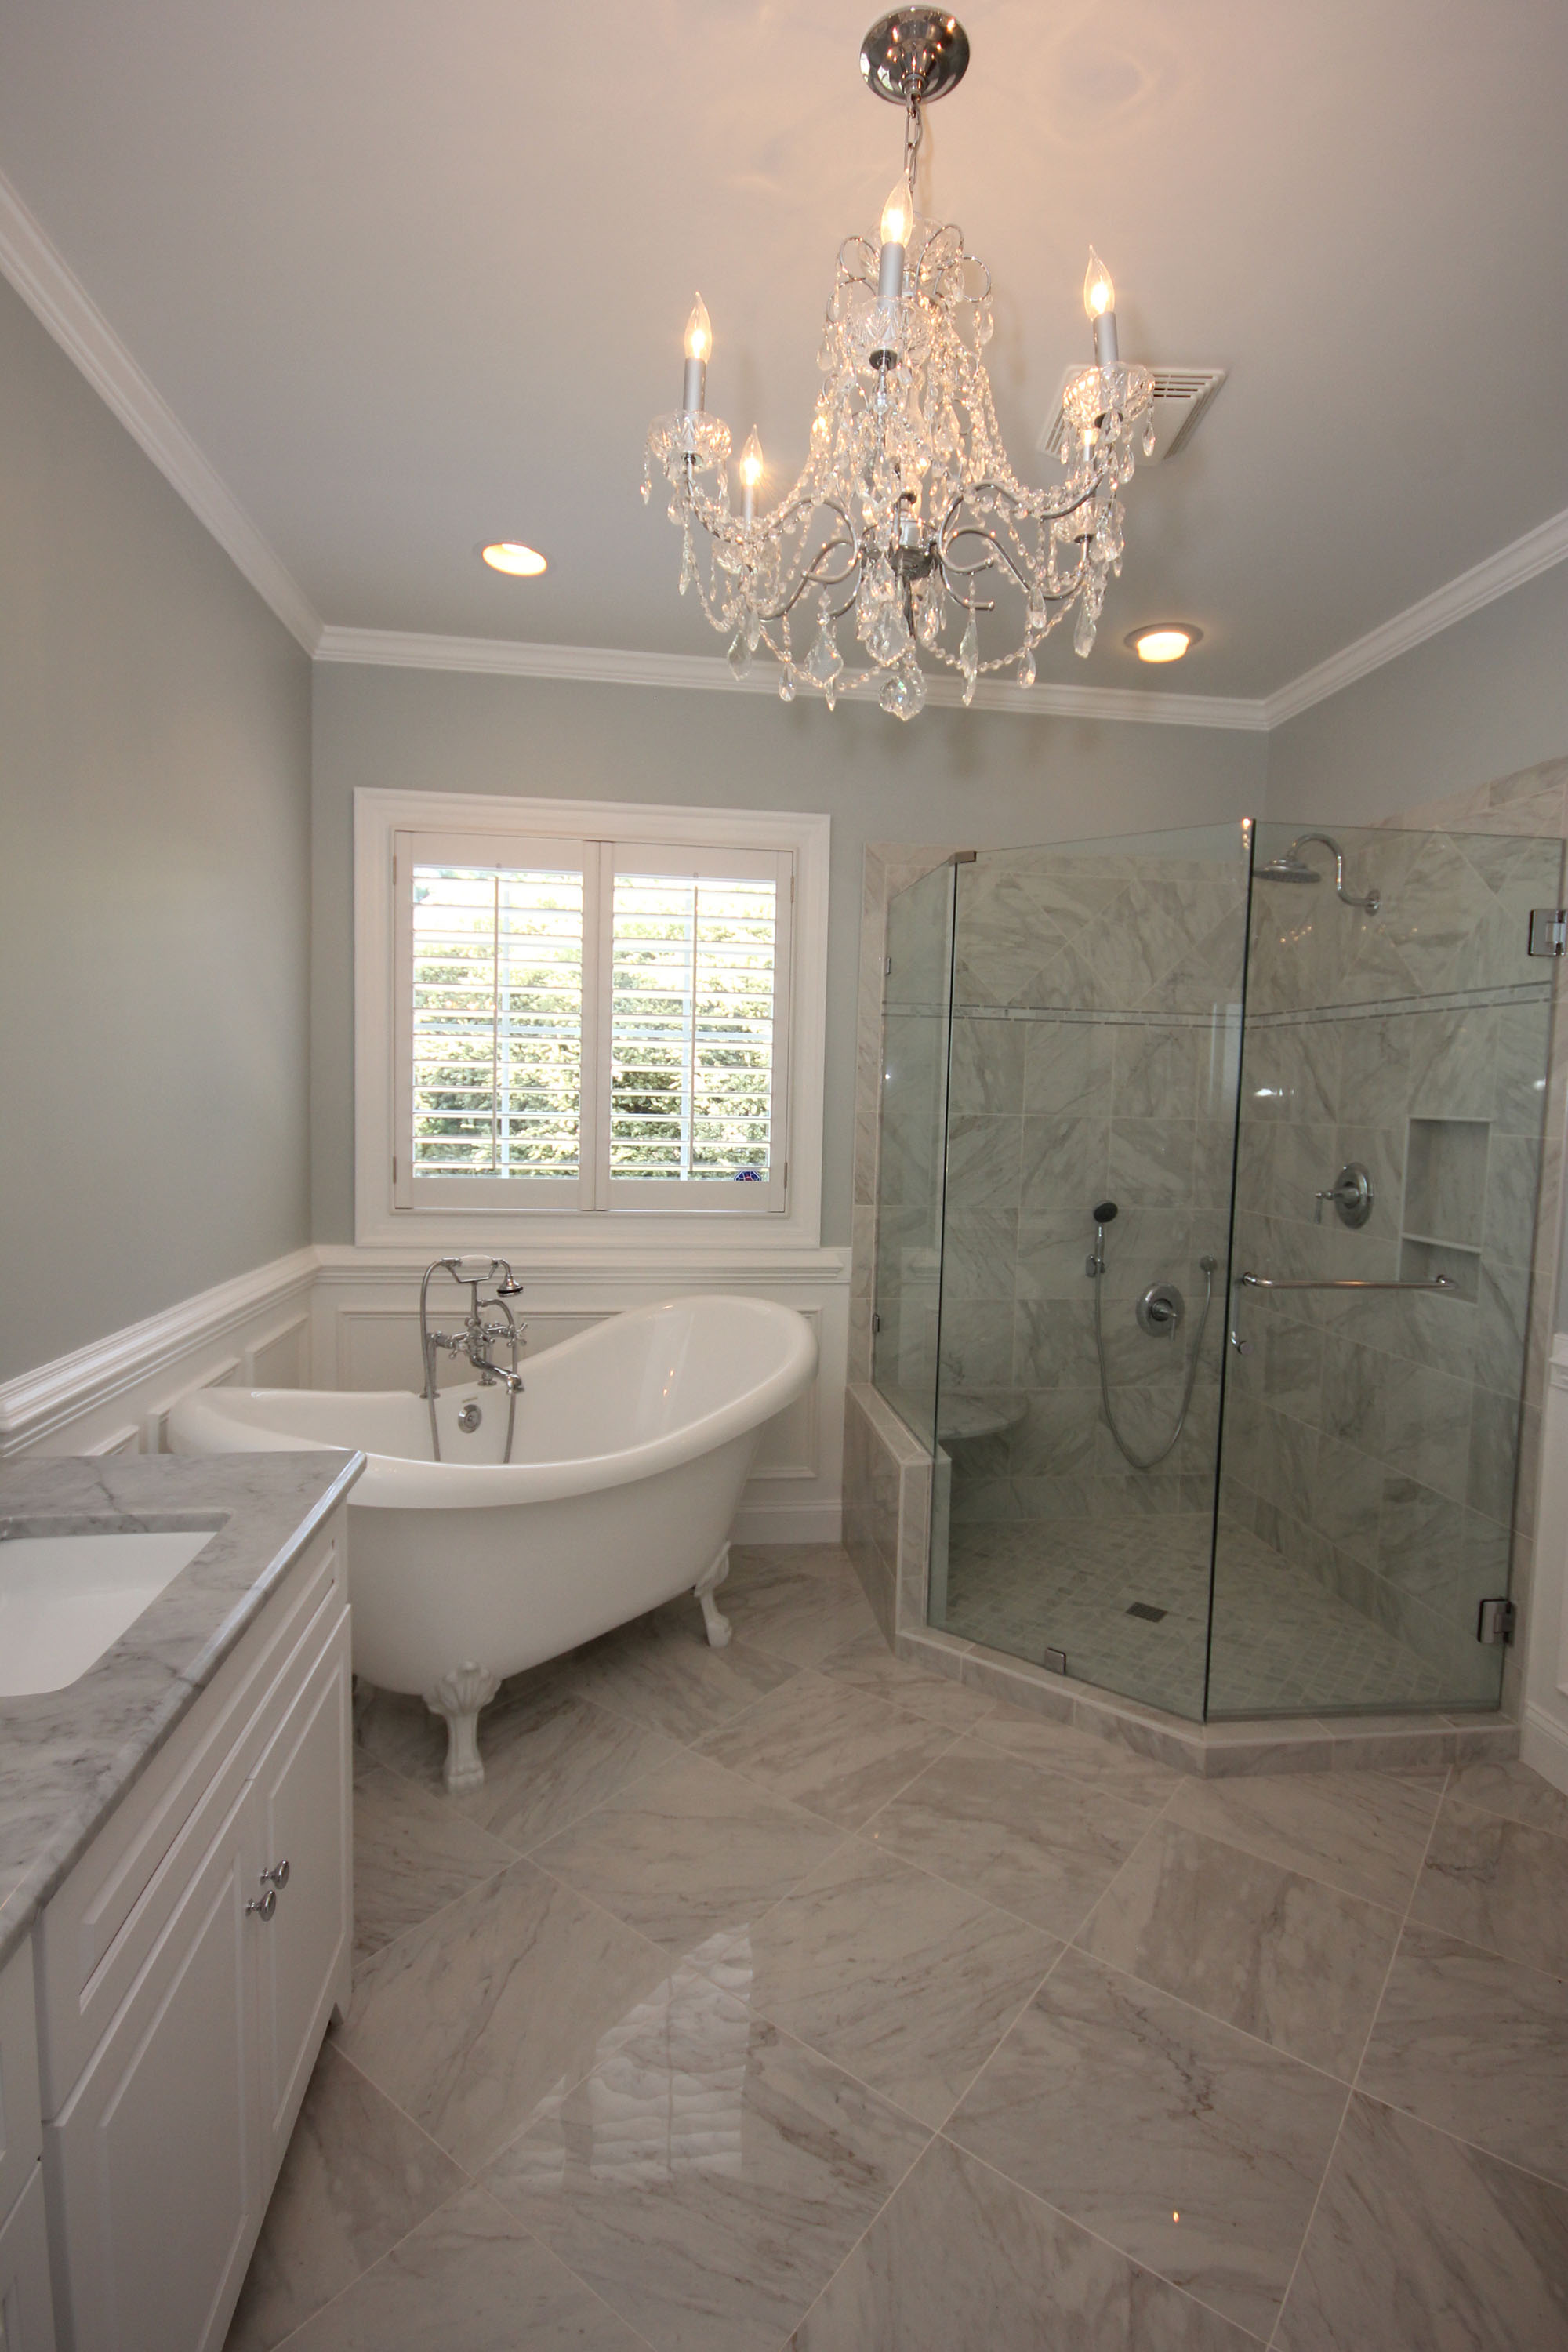 Bathroom Remodel With Freestanding Tub : Freestanding bathtubs by cary bathroom remodeling